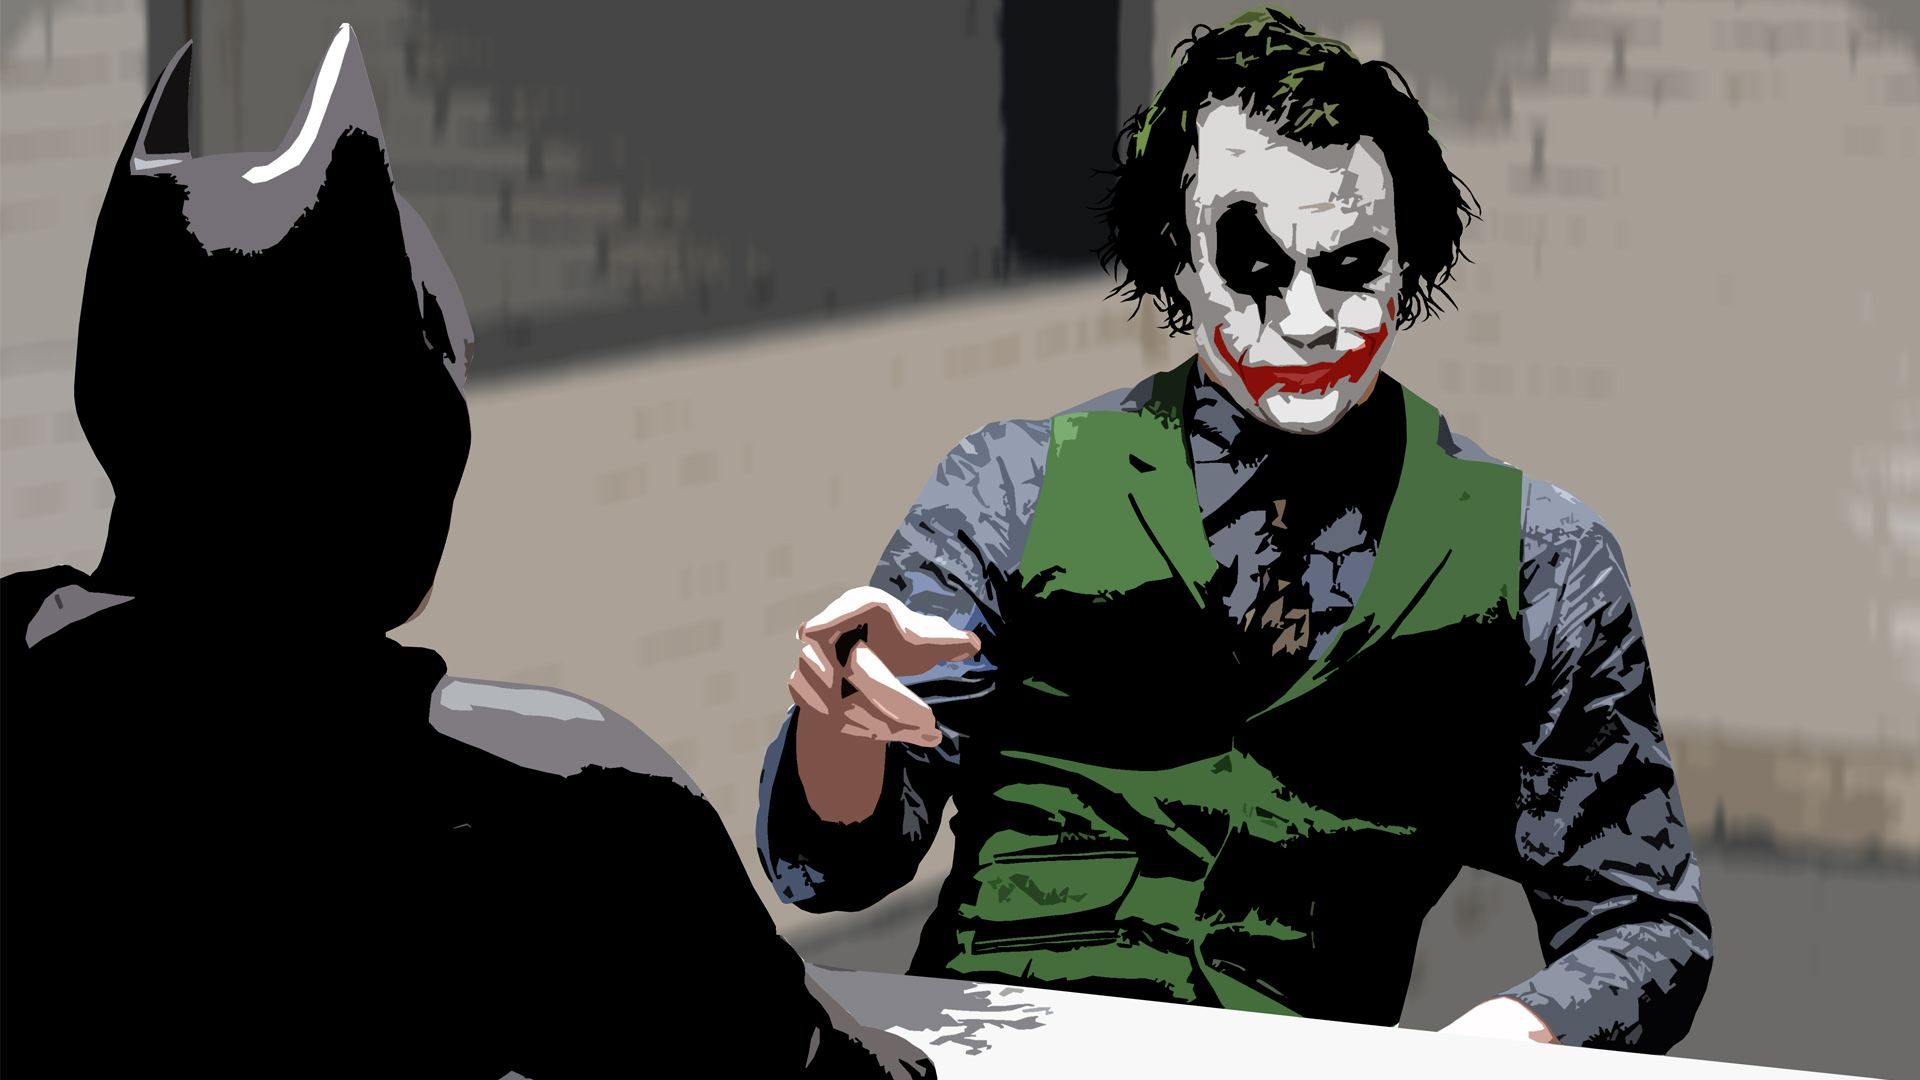 Why so serious hd wallpapers hd wallpapers voltagebd Choice Image